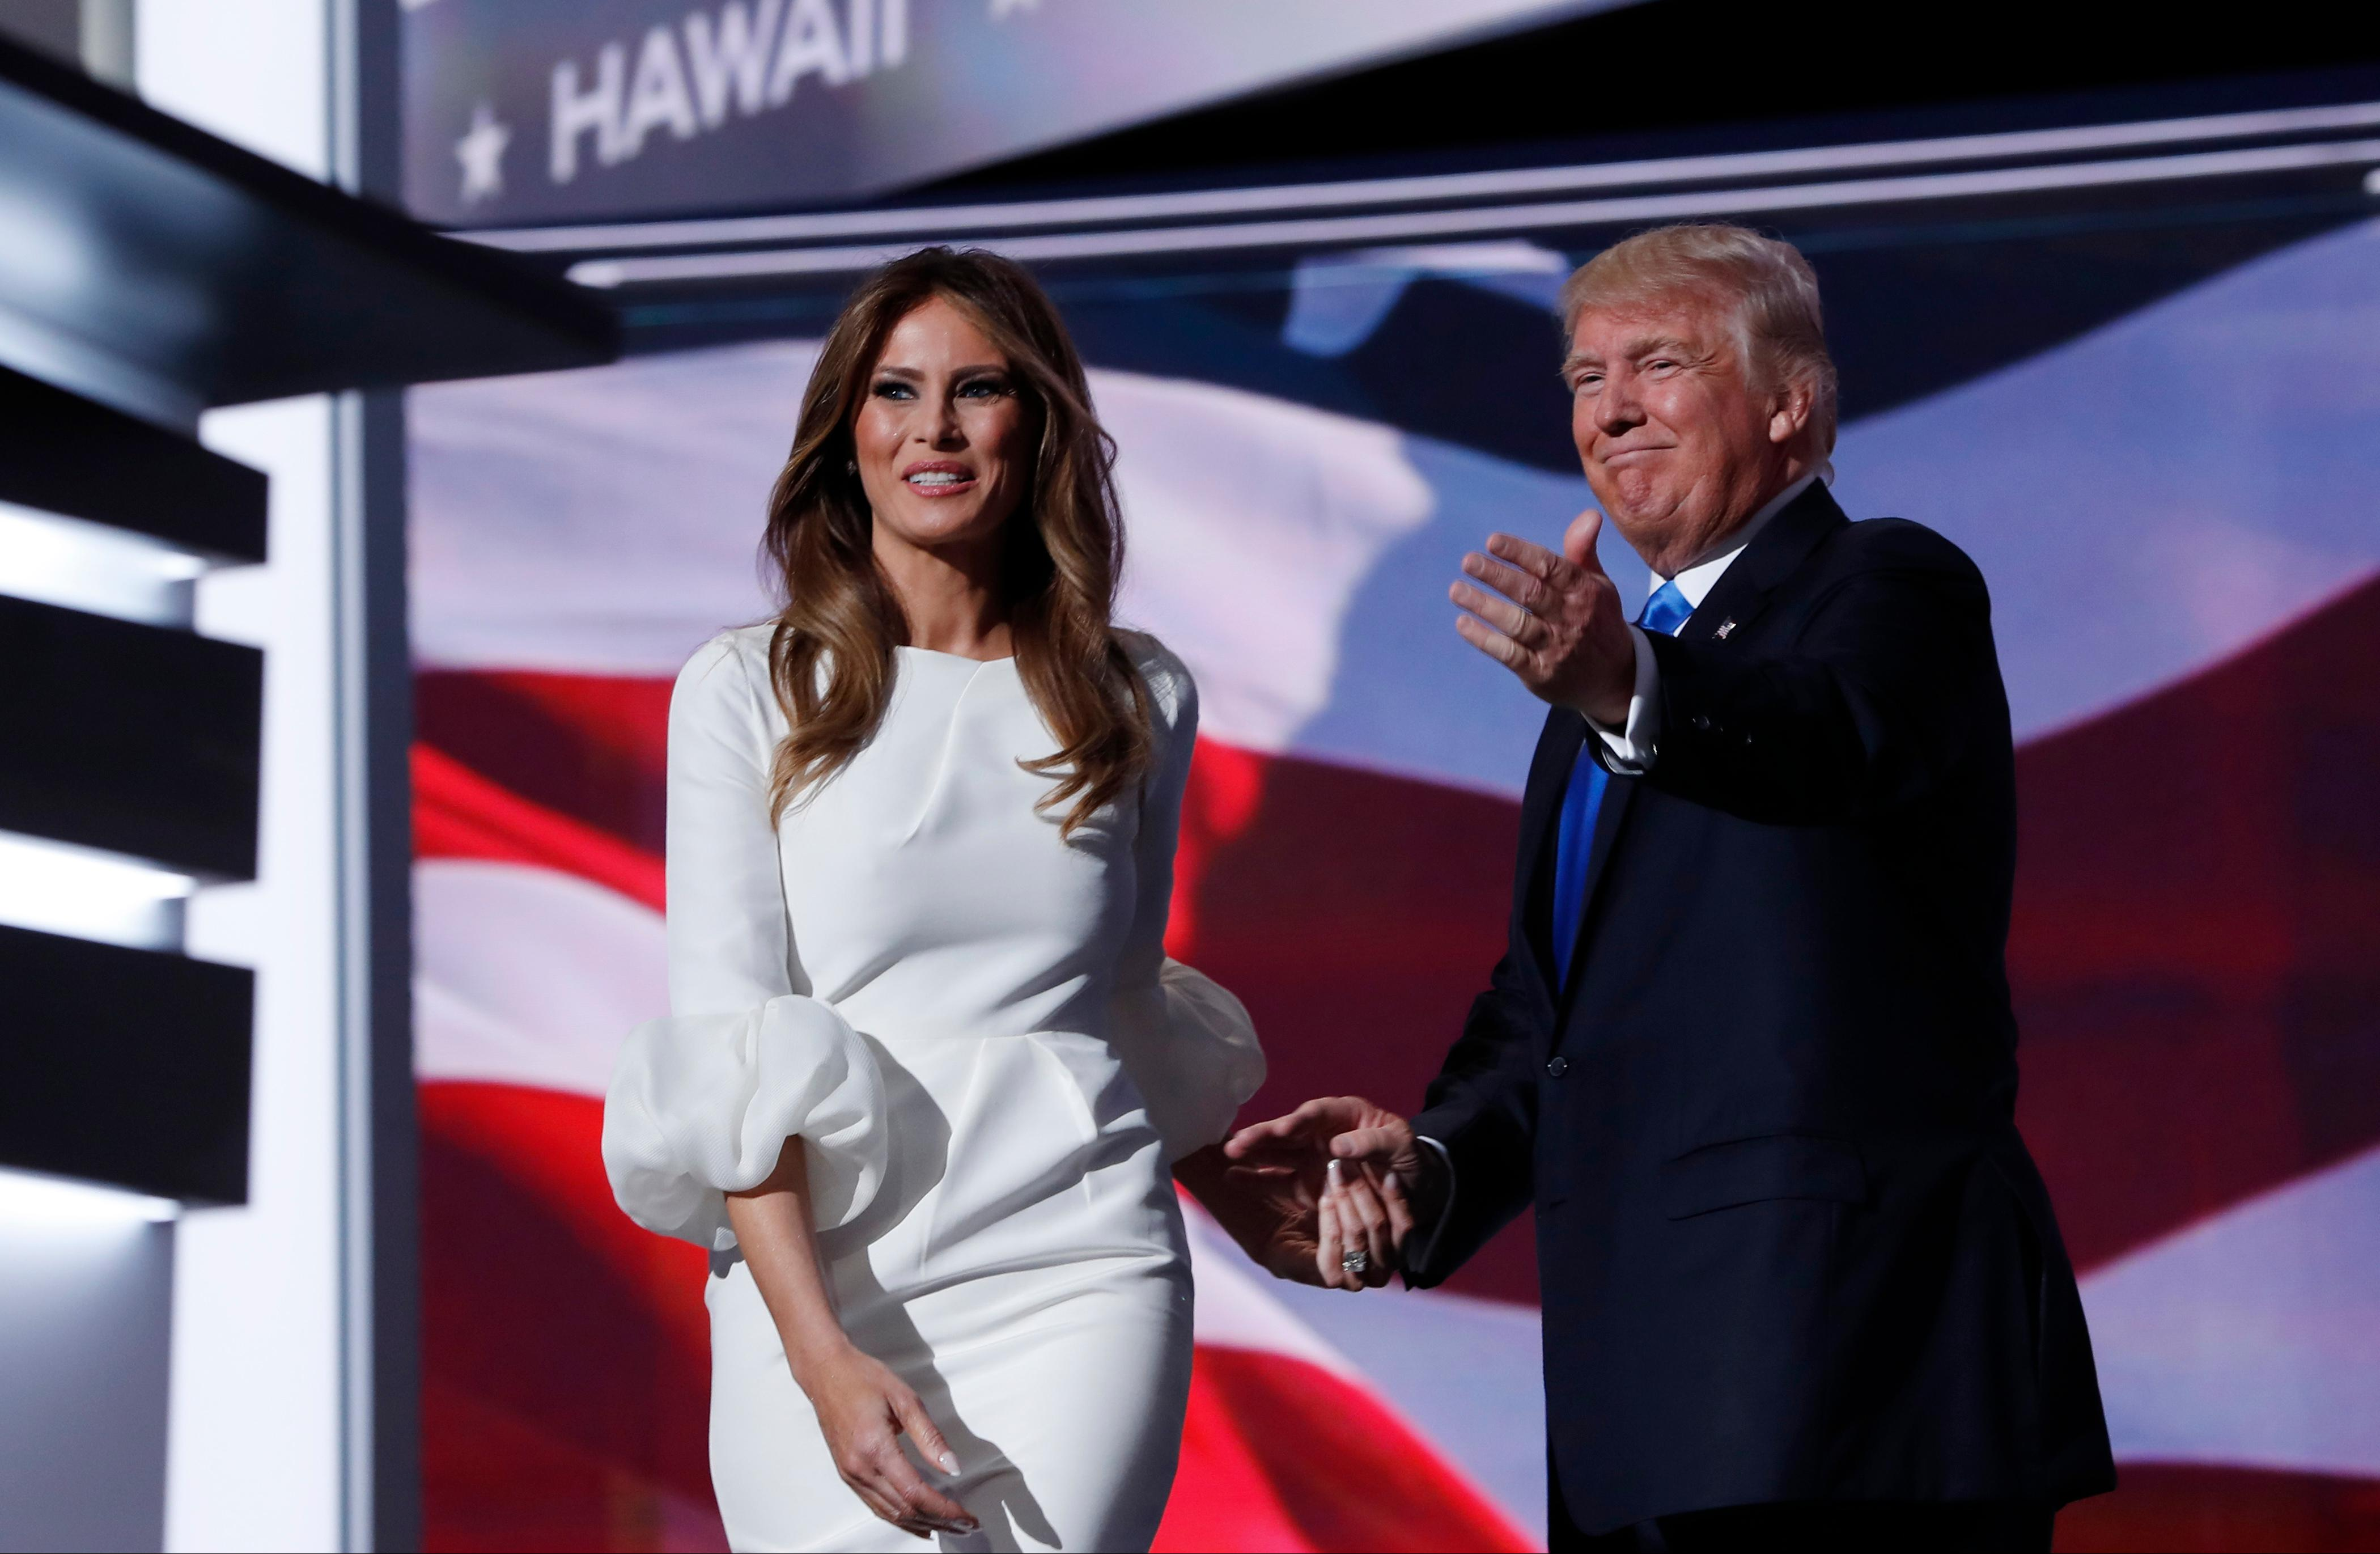 Melania Trump, wife of Republican Presidential Candidate Donald Trump walks to the stage as Donald Trump introduces her during the opening day of the Republican National Convention in Cleveland, Monday, July 18, 2016. (AP Photo/Carolyn Kaster)